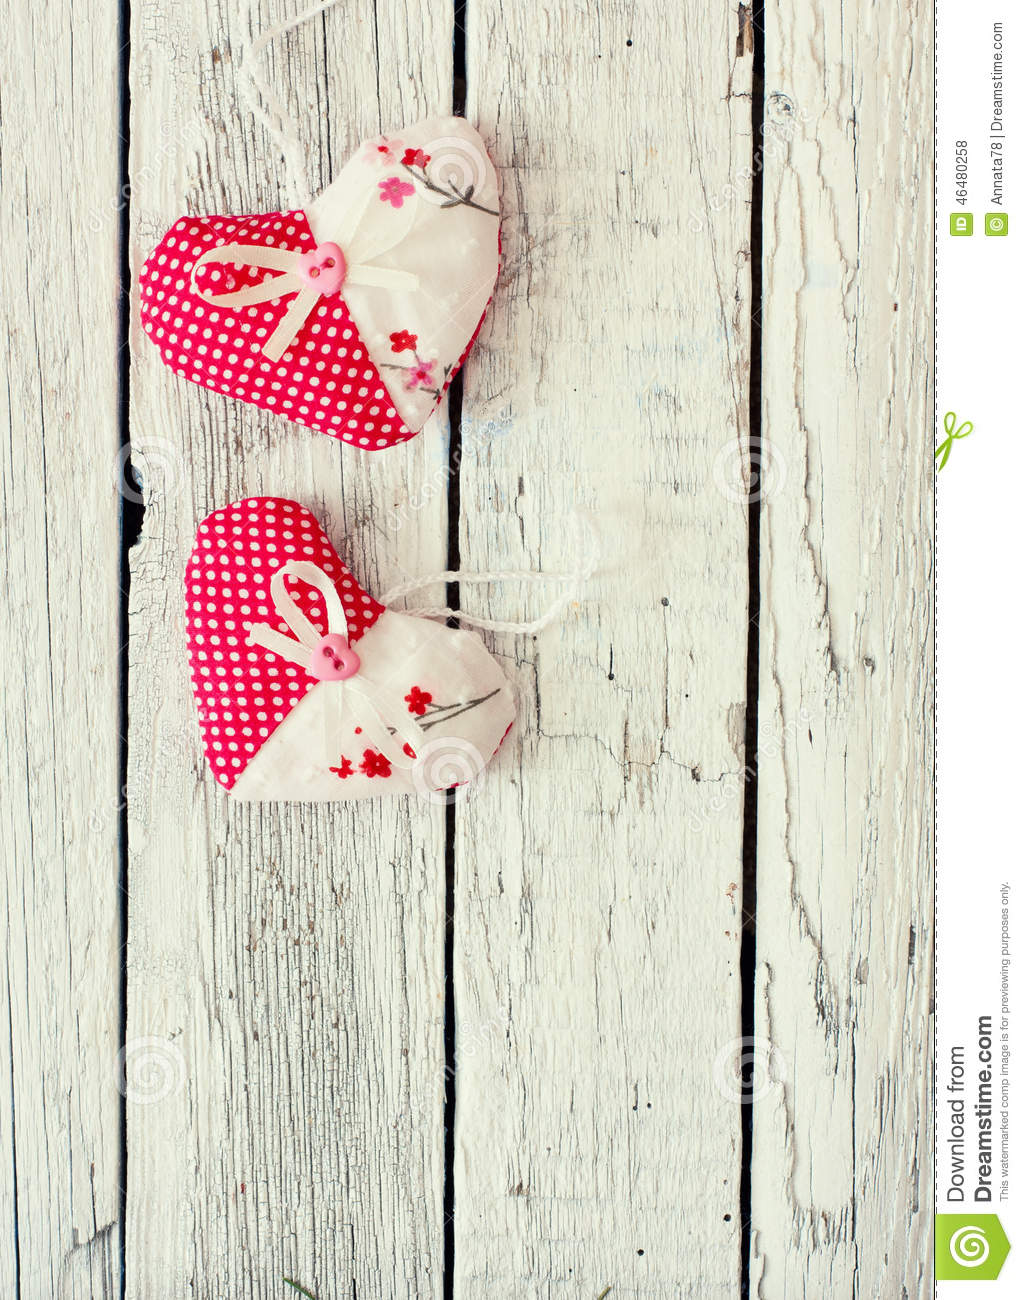 Vintage wood background with decorative hearts